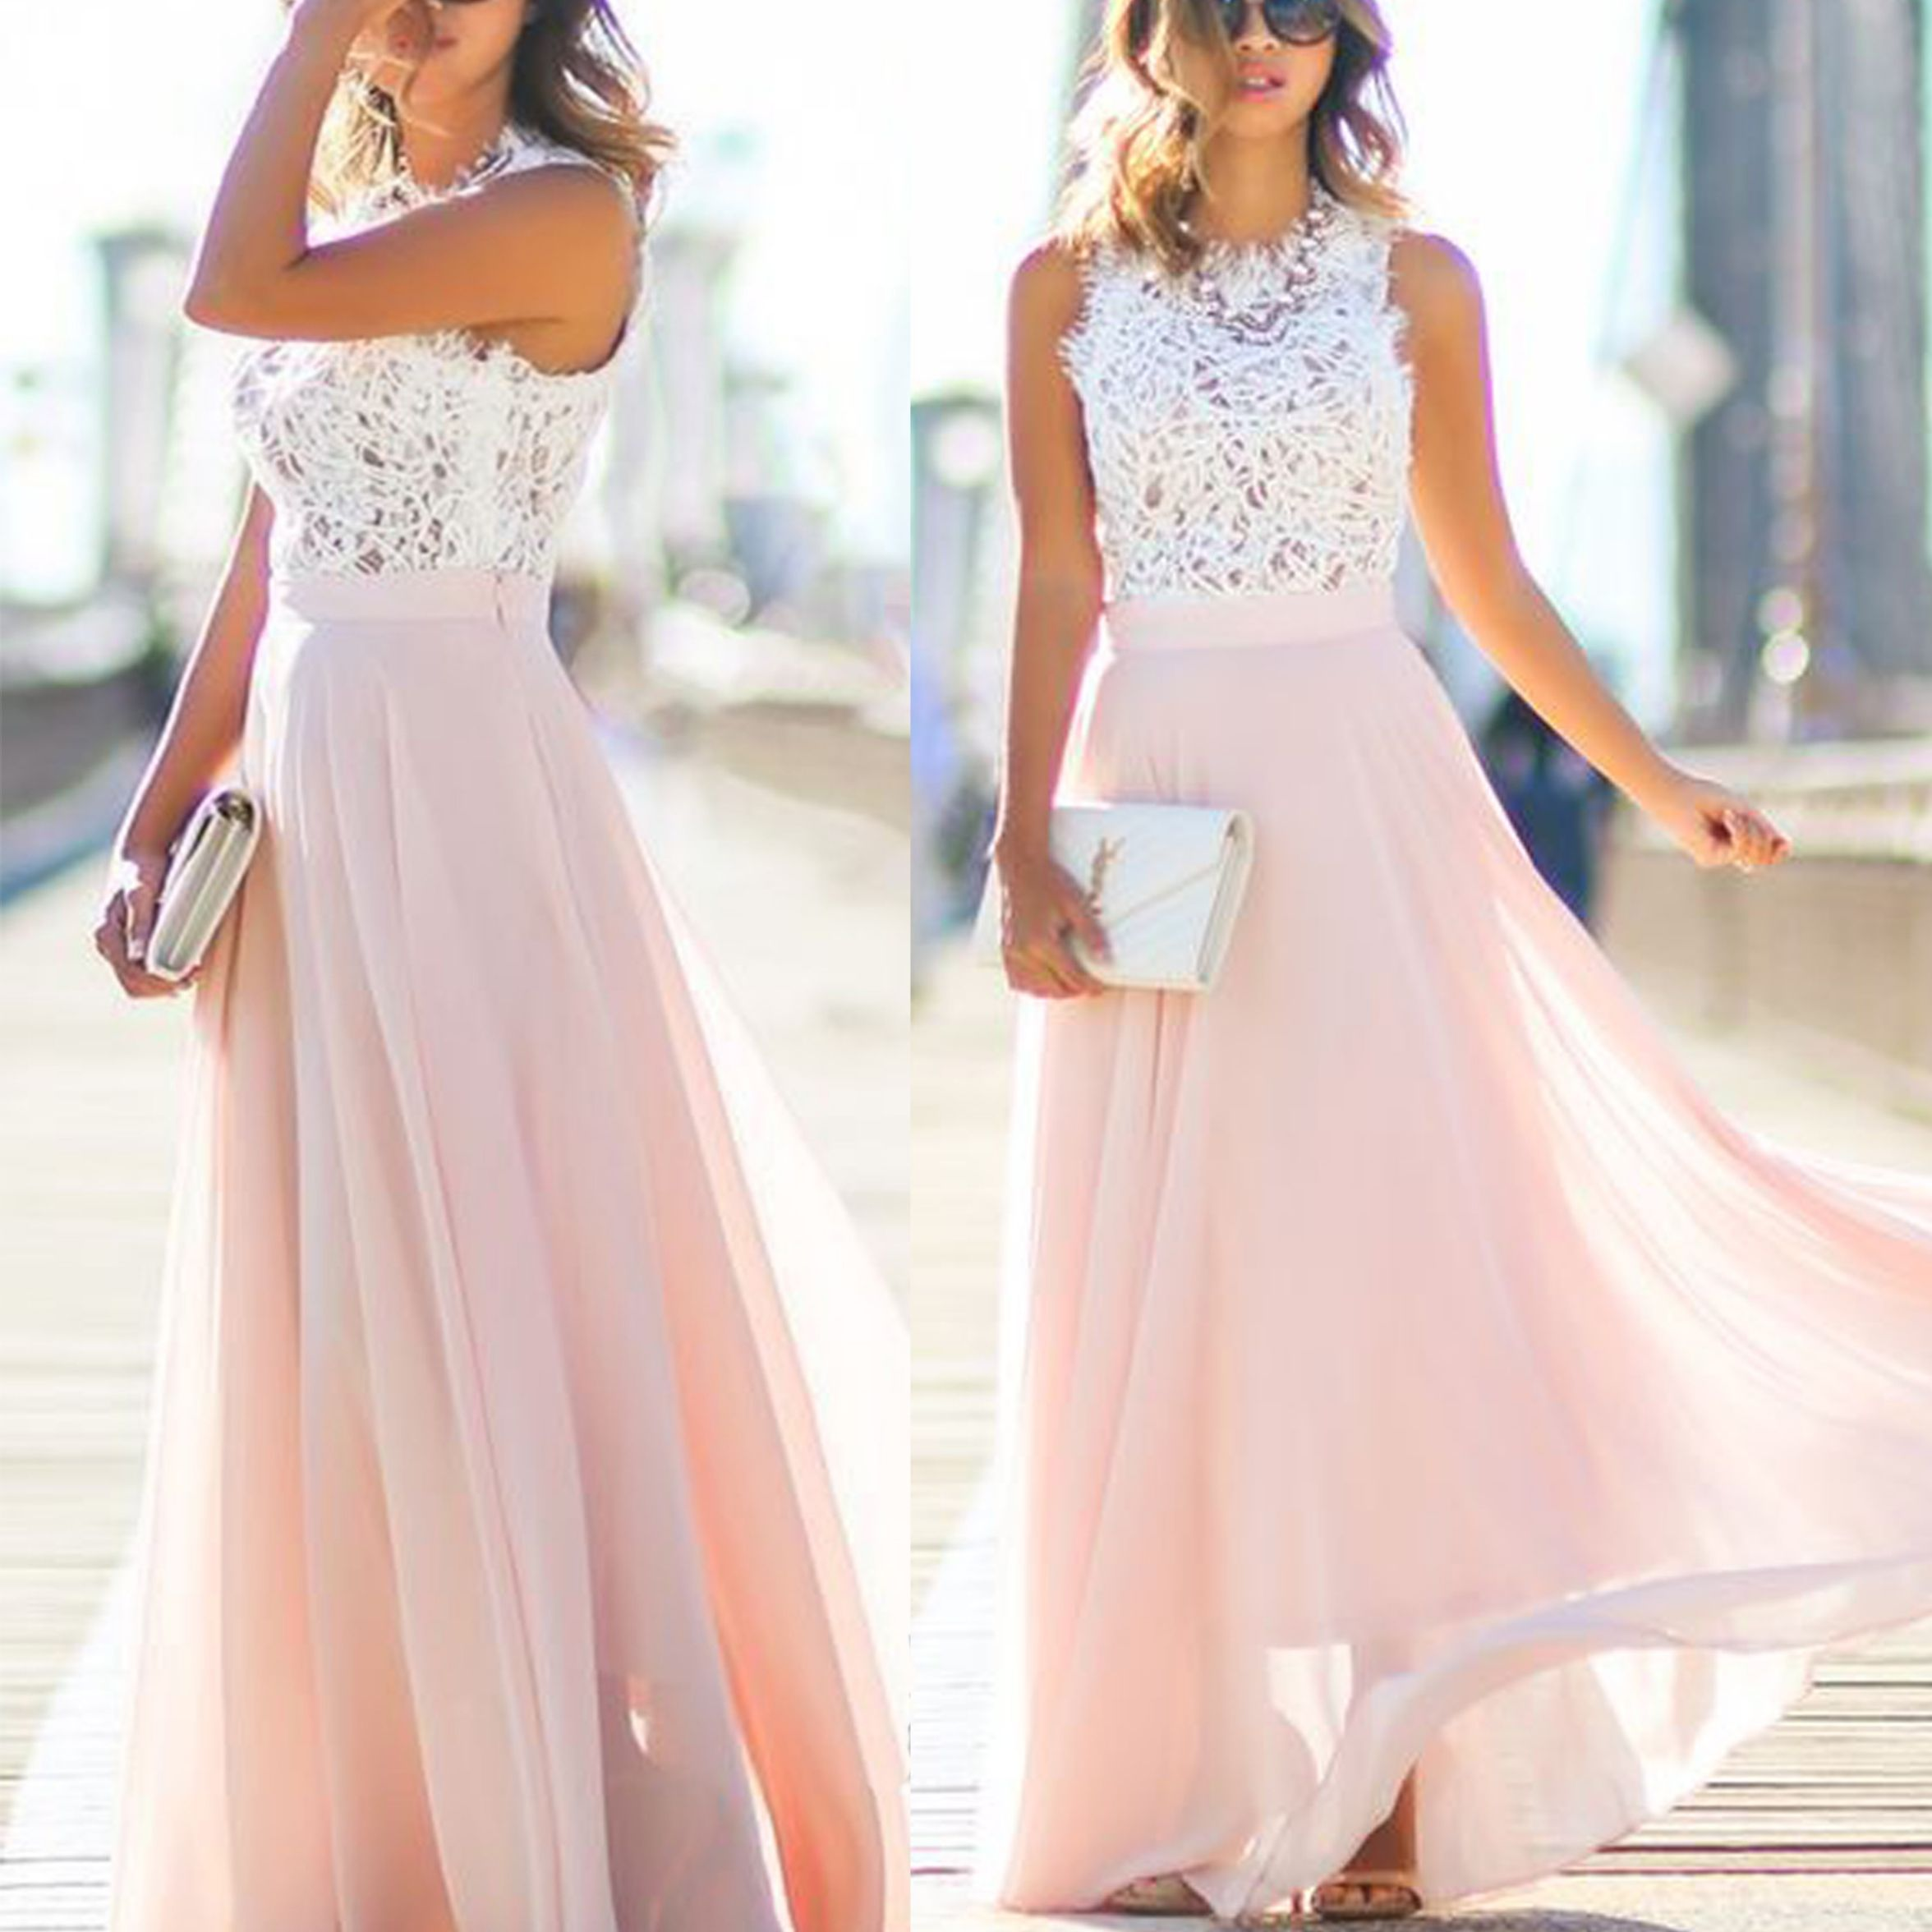 Bridesmaid dresses cheap dresses long dresses cheap bridesmaid bridesmaid dresses cheap dresses long dresses cheap bridesmaid dresses pretty dresses blush bridesmaid dresses longlight pink ombrellifo Image collections